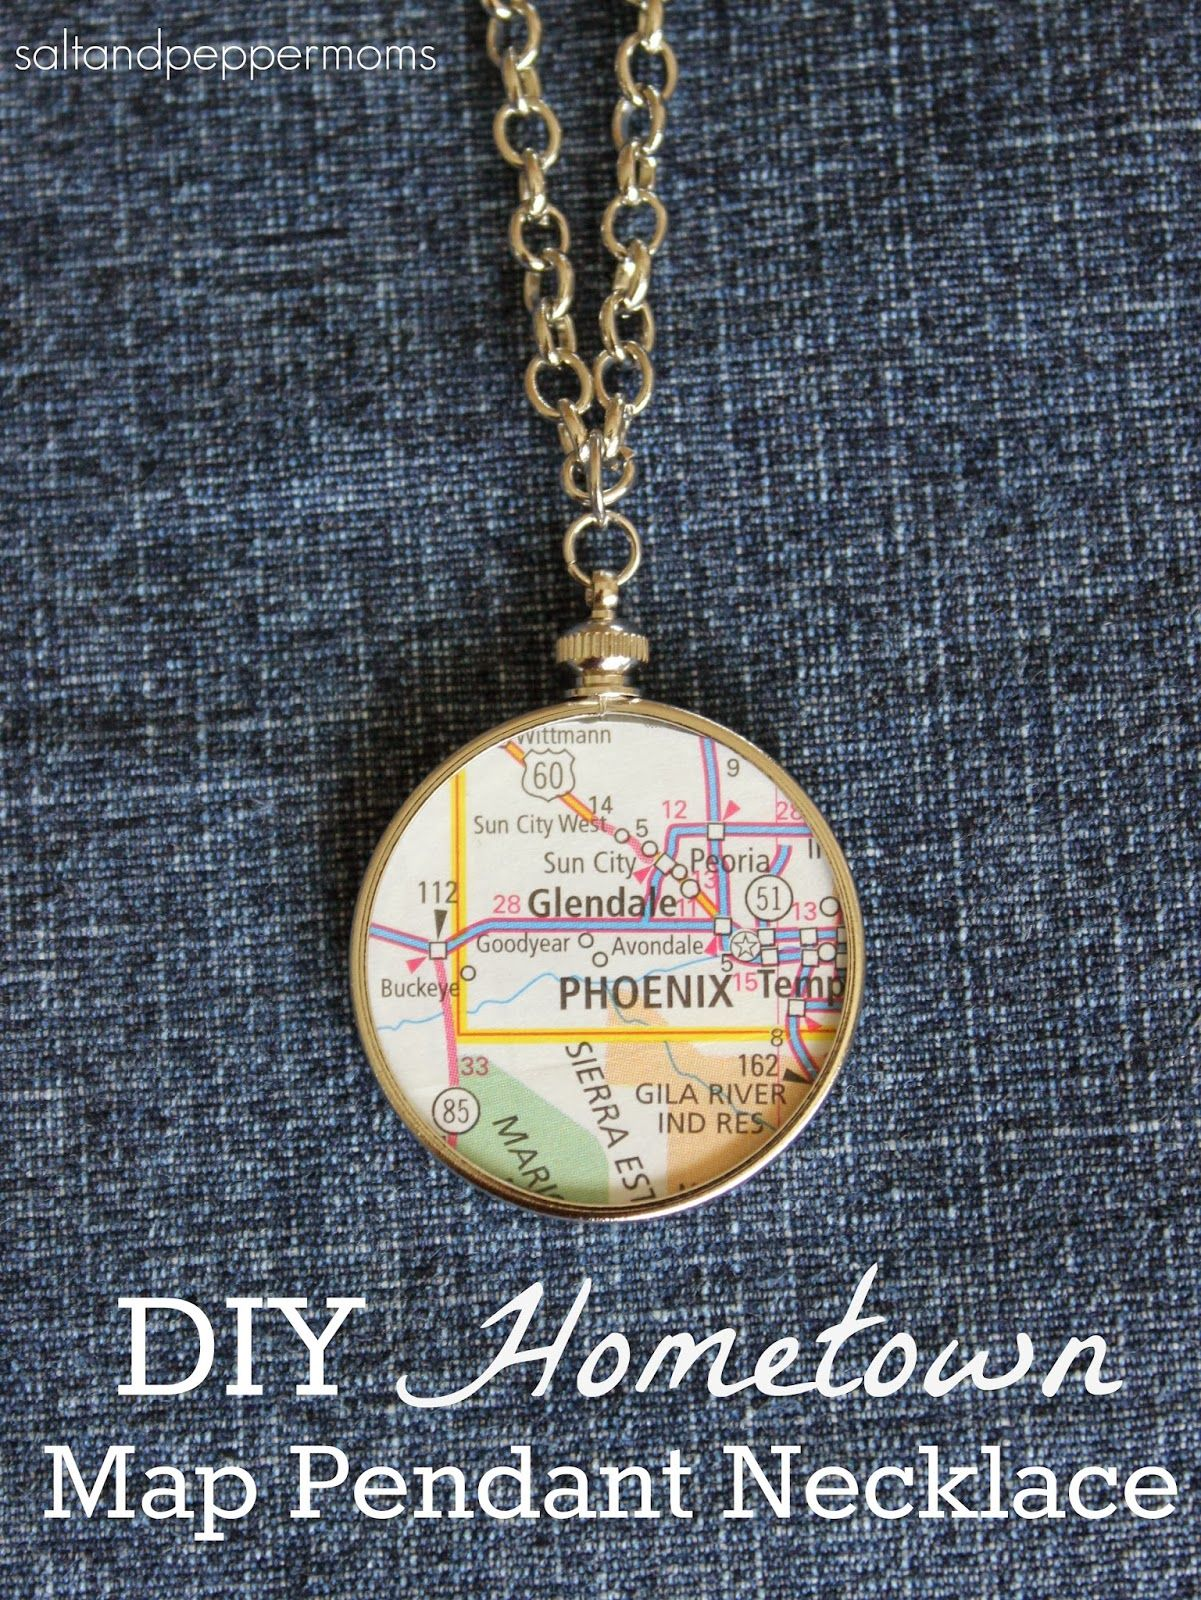 Rep Your Favorite Cities With A DIY Map Keychainsuch A Cute DIY - Chicago map necklace